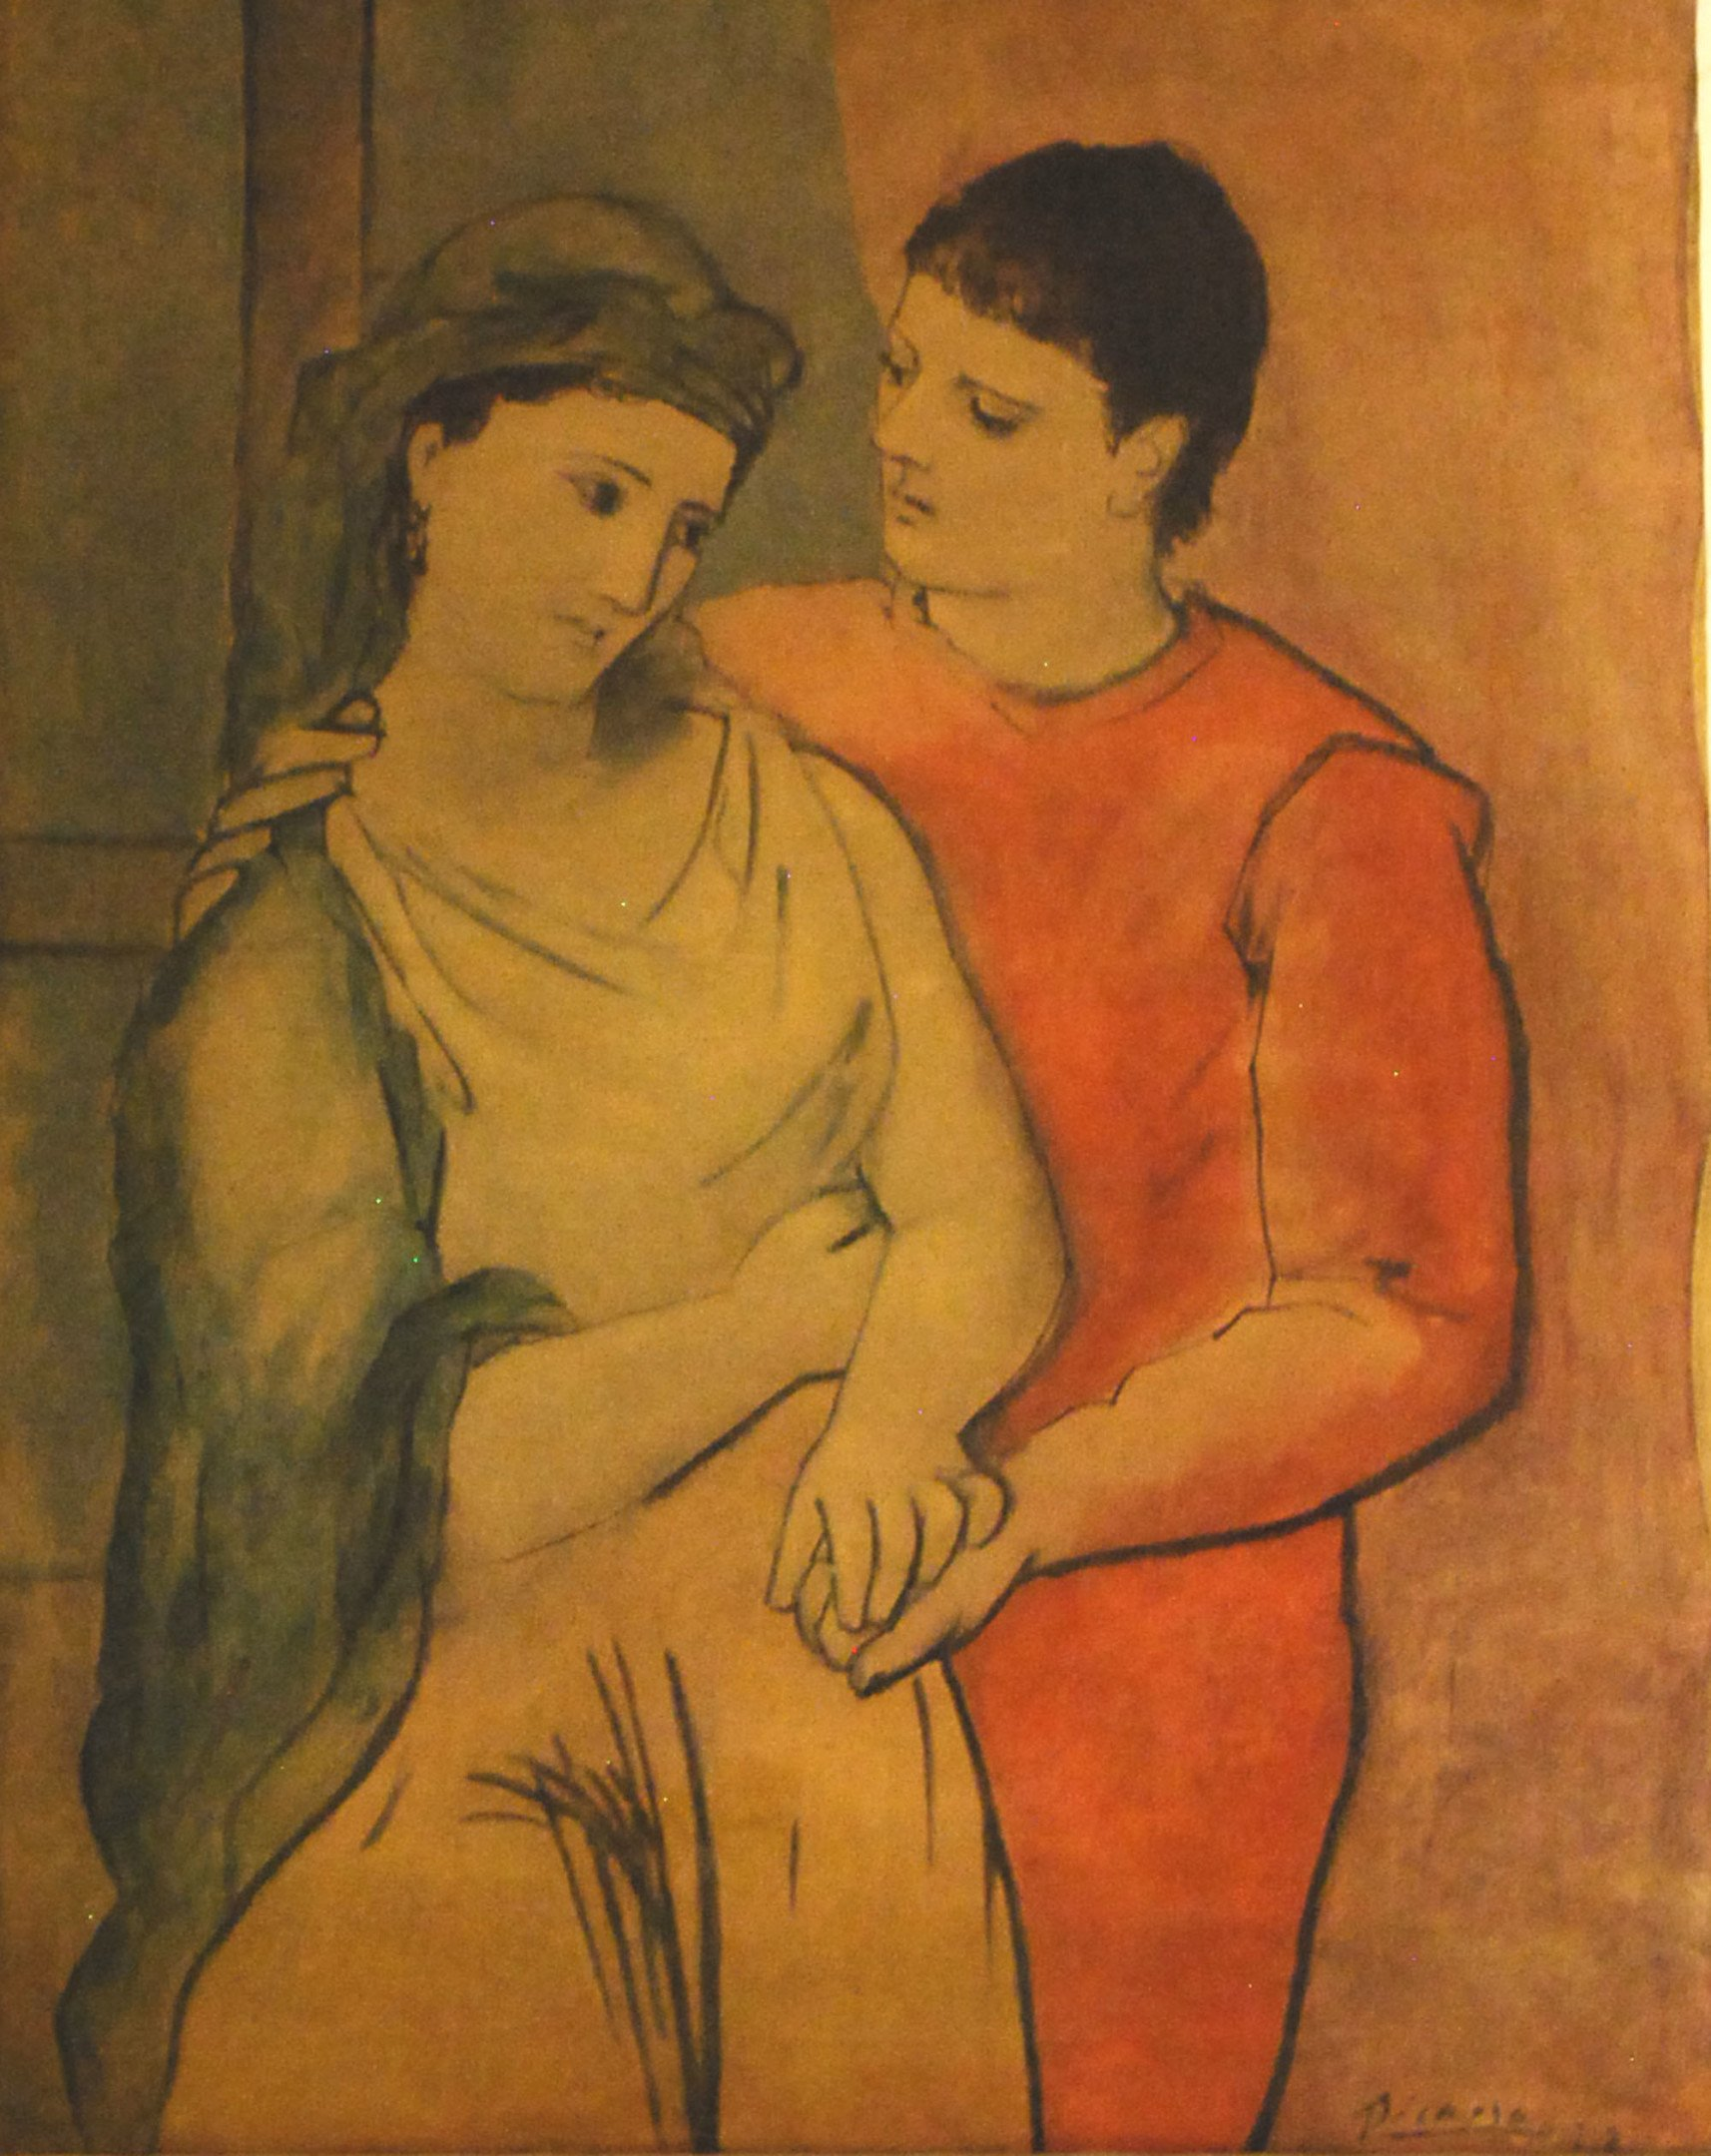 Reproduction of Oil Painting Lovers by Pablo Picasso, 1960s